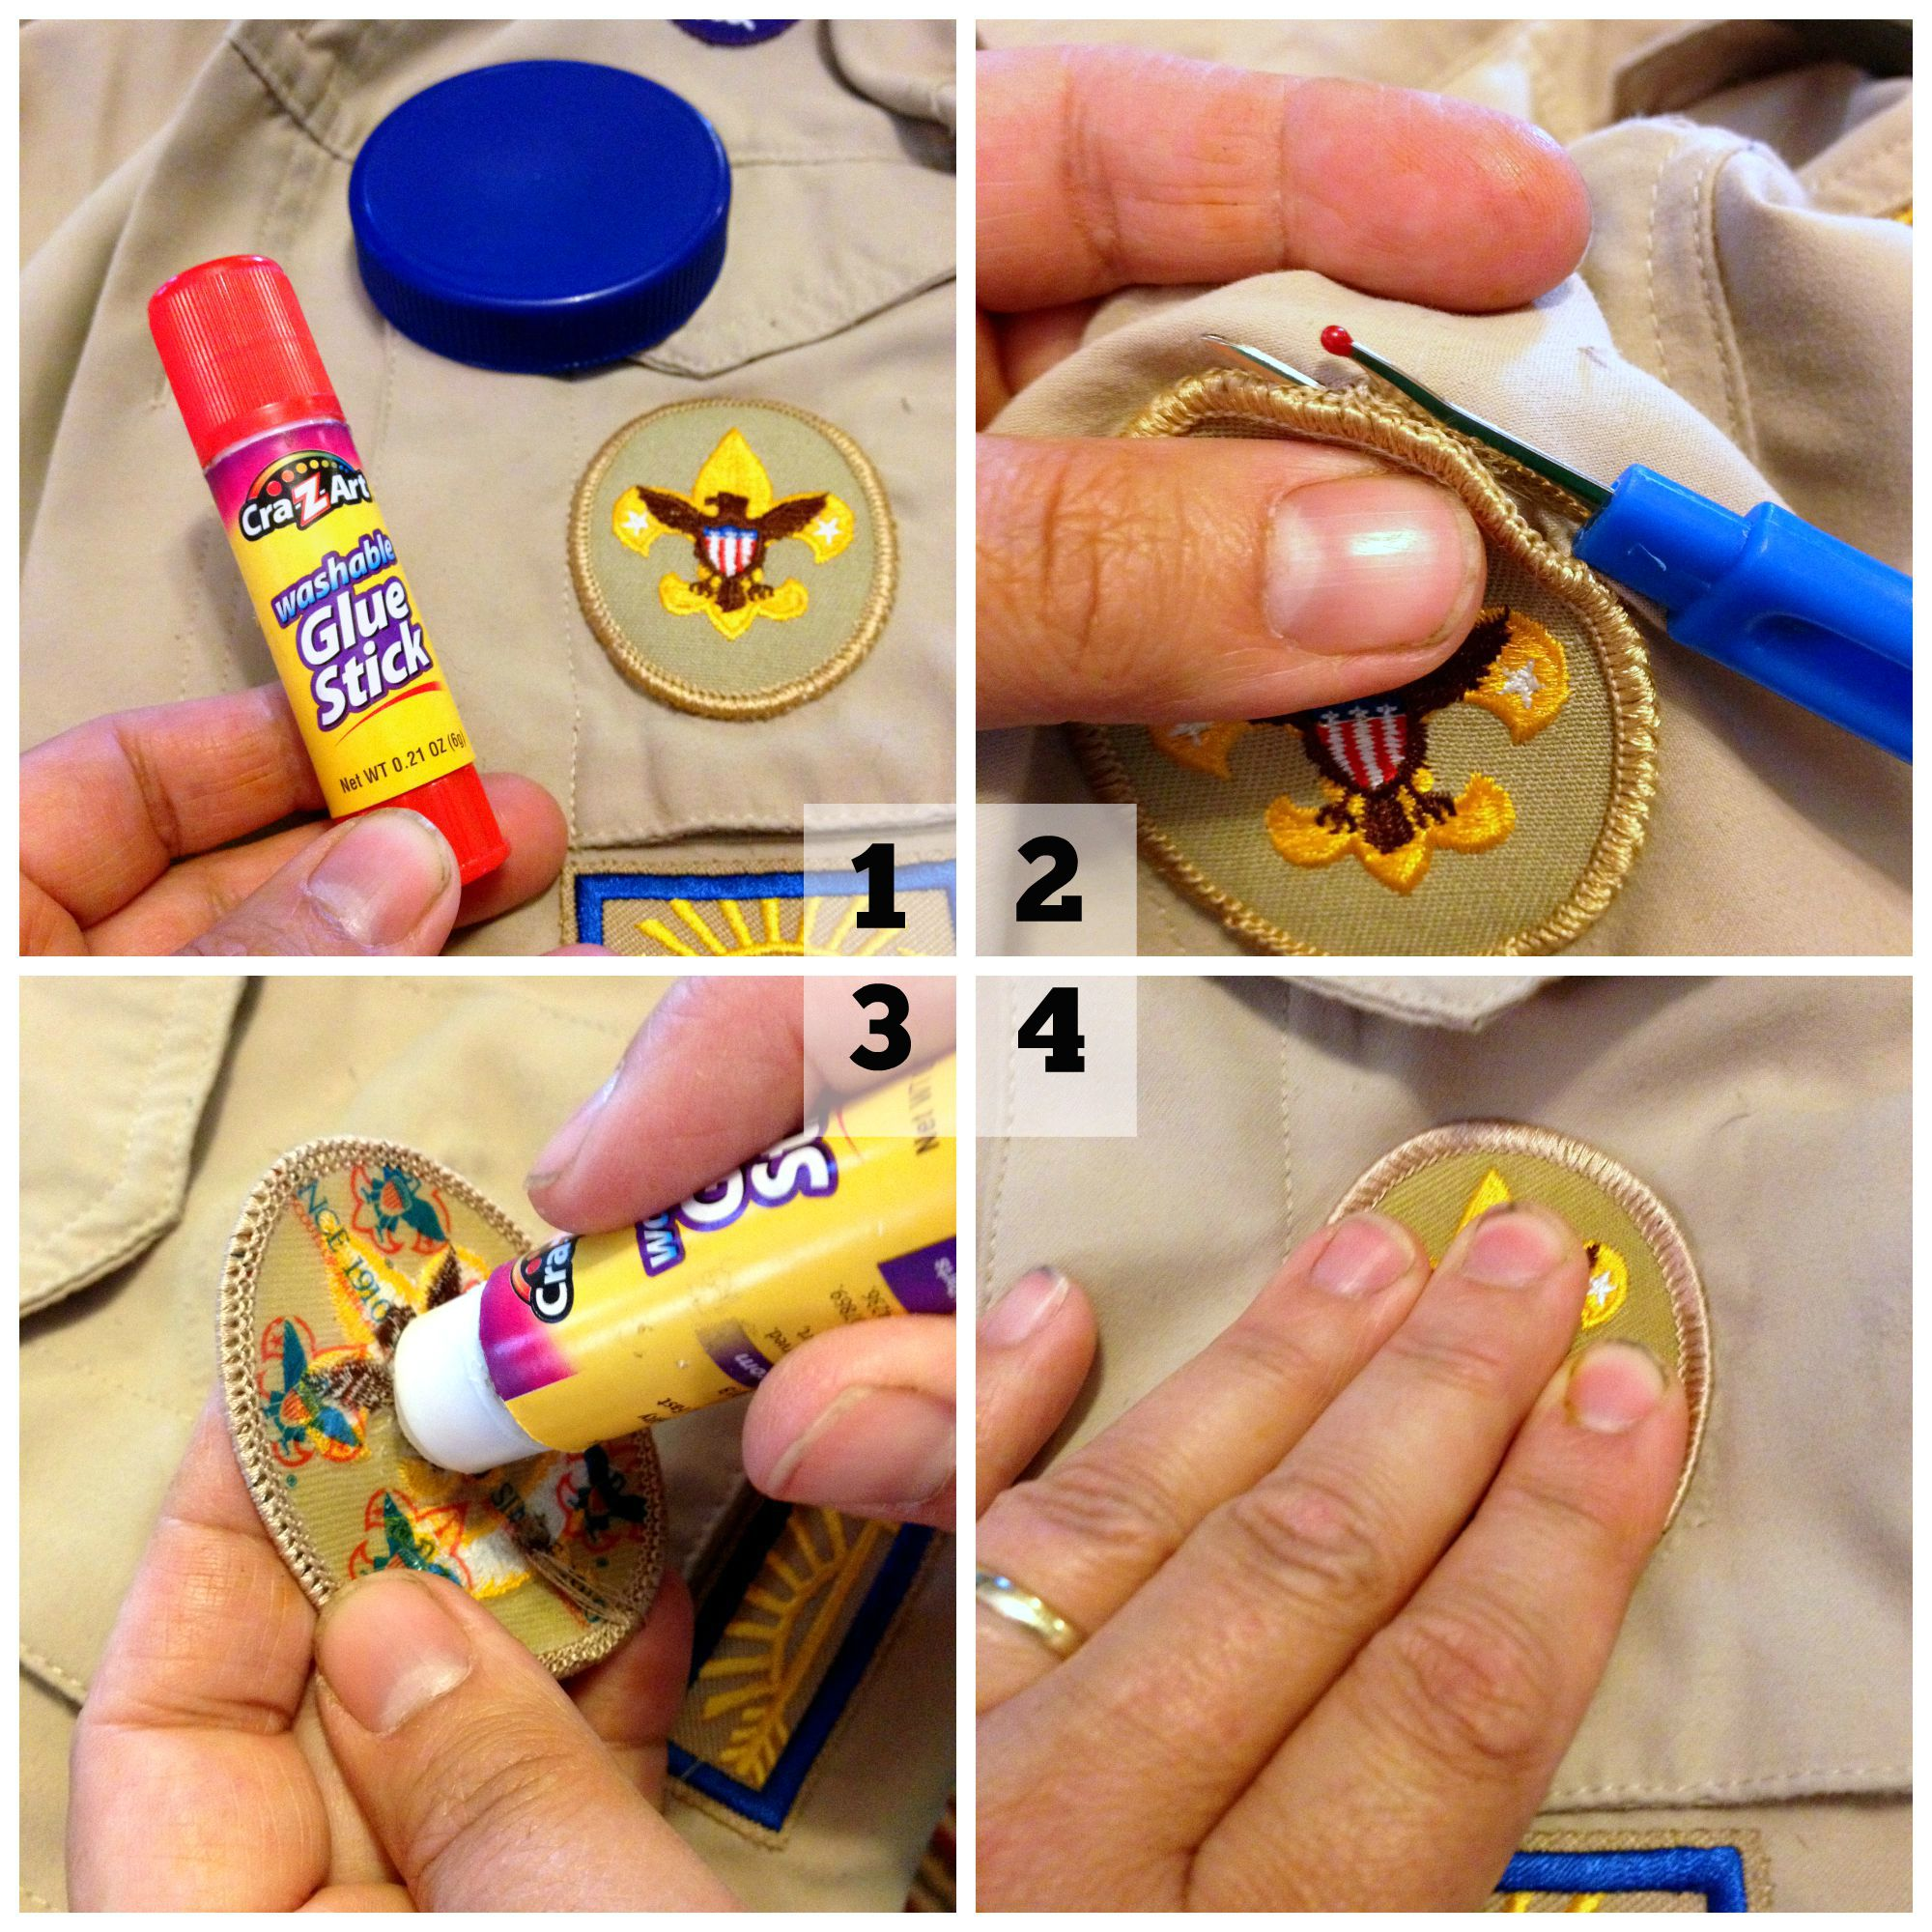 How to sew on Scout patches the easy way! - Frugal Upstate